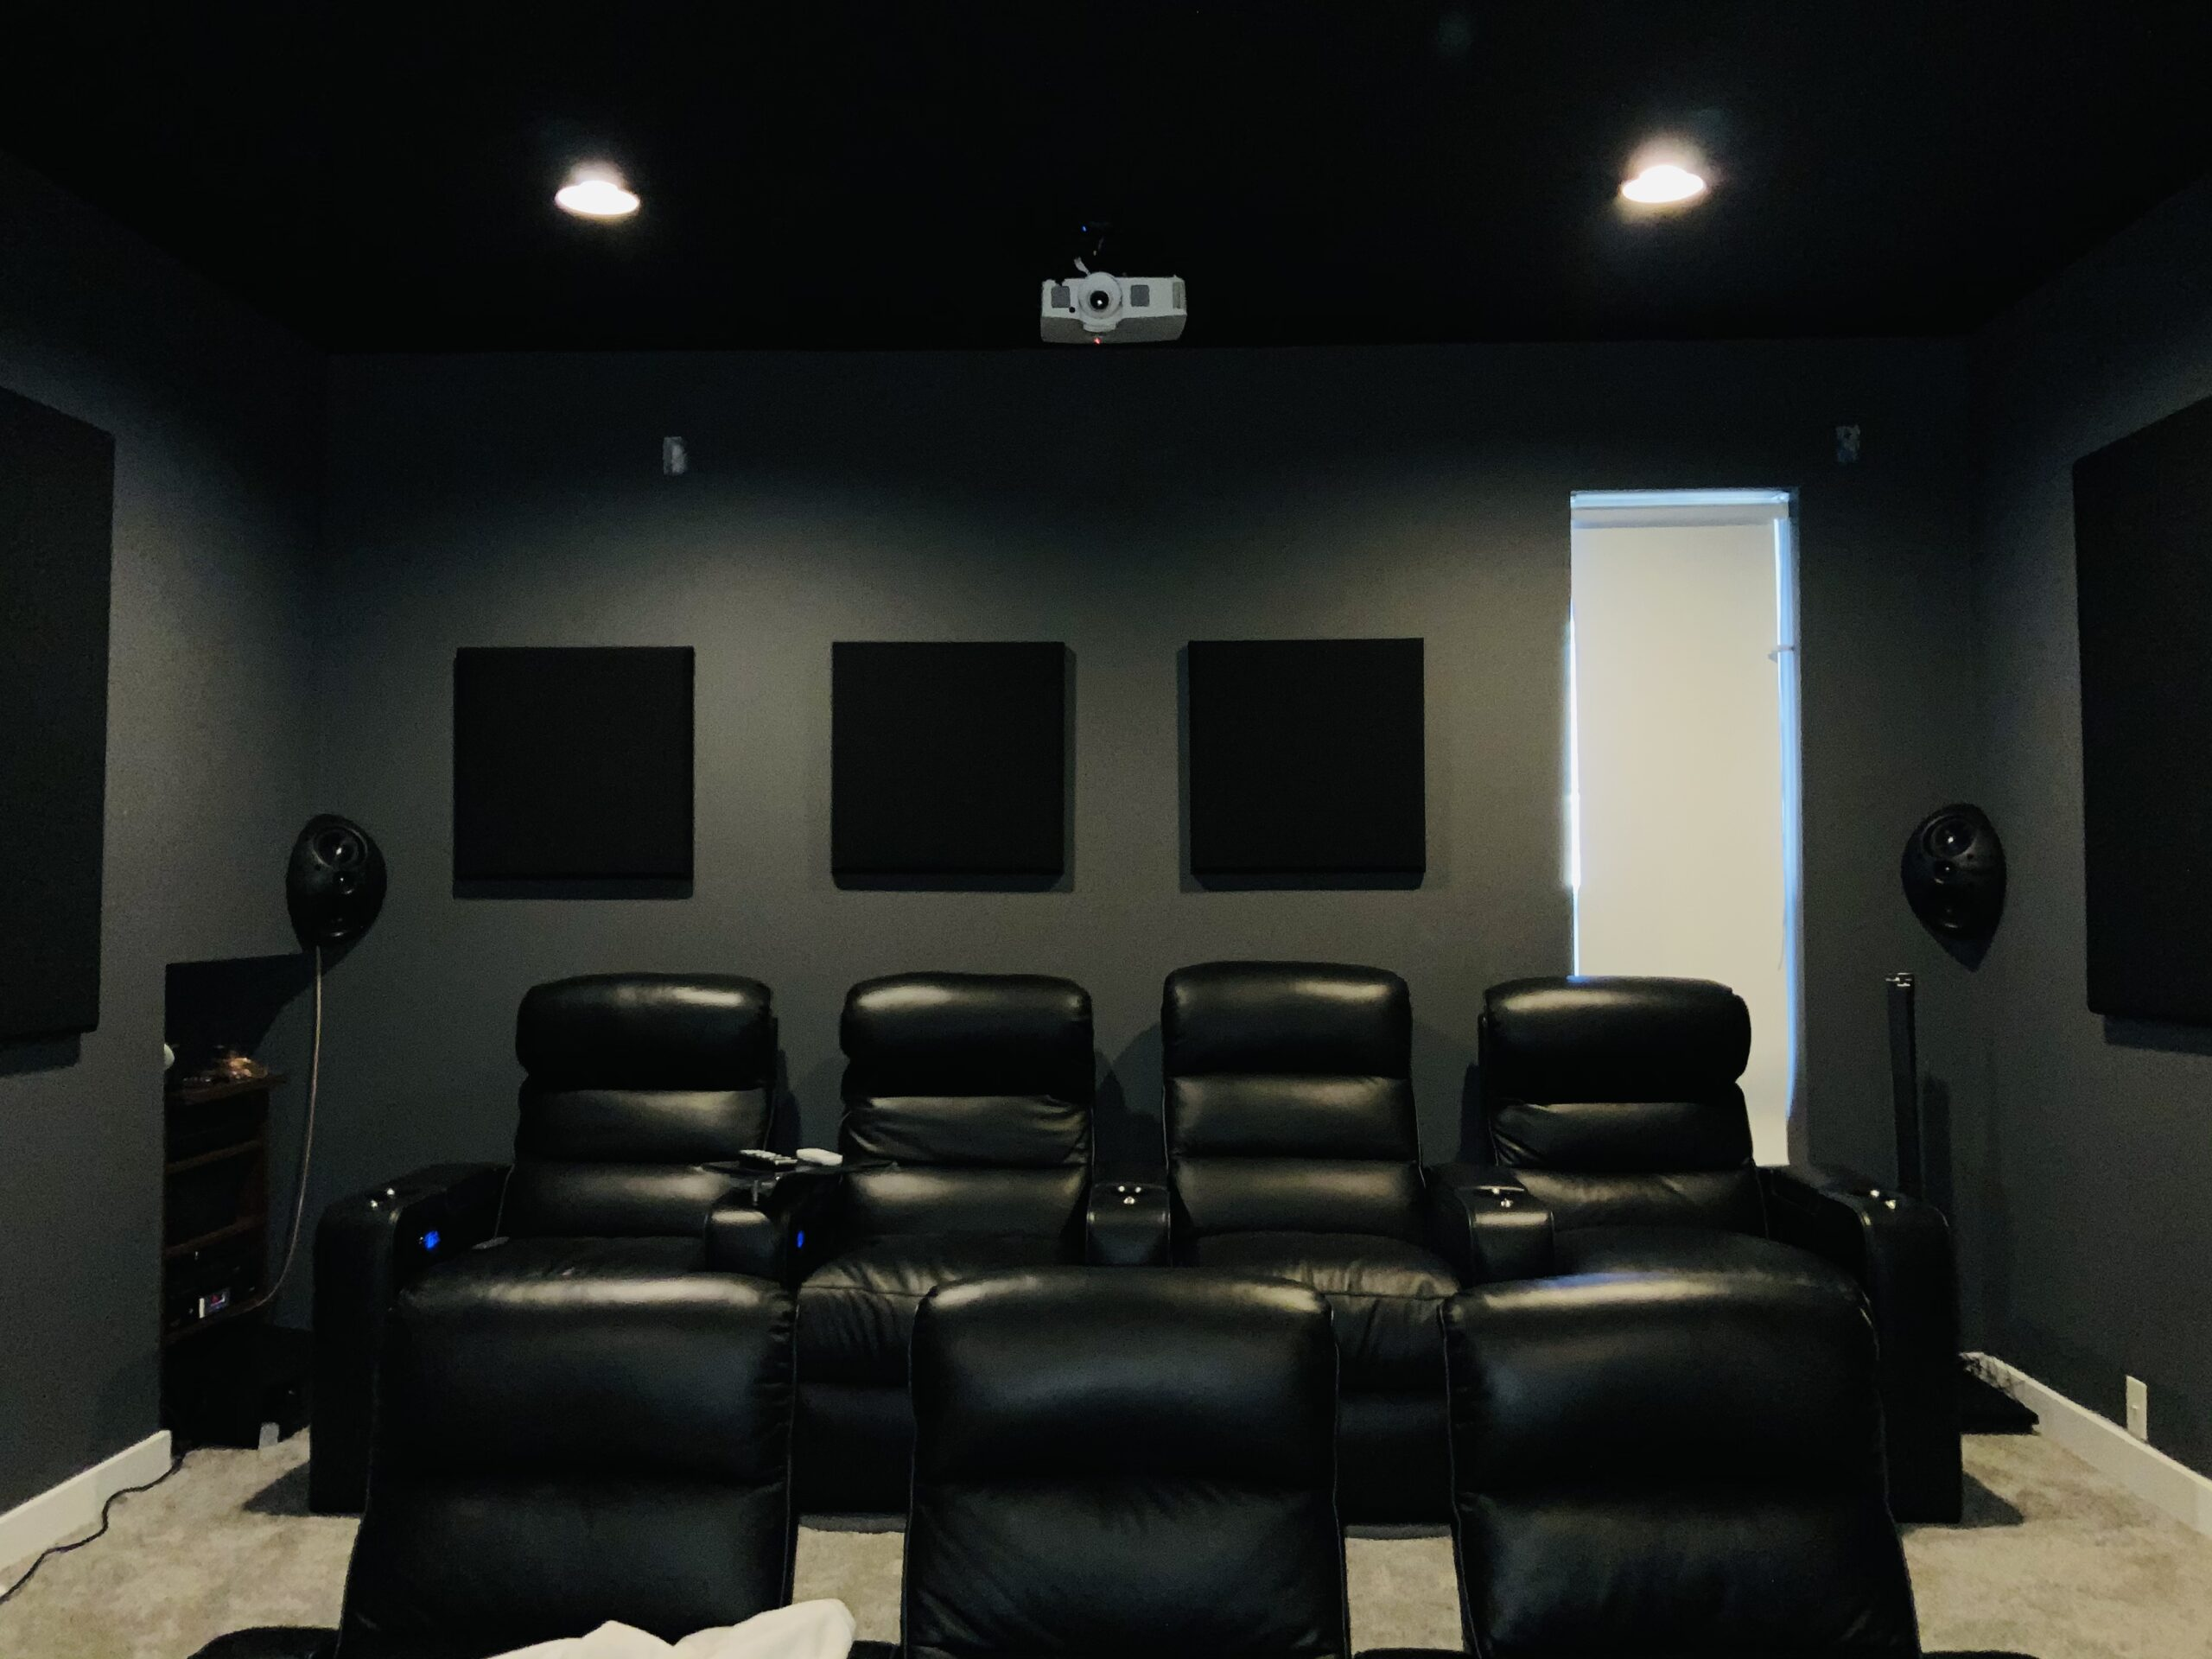 Dedicated home theater room demo with short throw laser projection, custom seating and acoustic panels